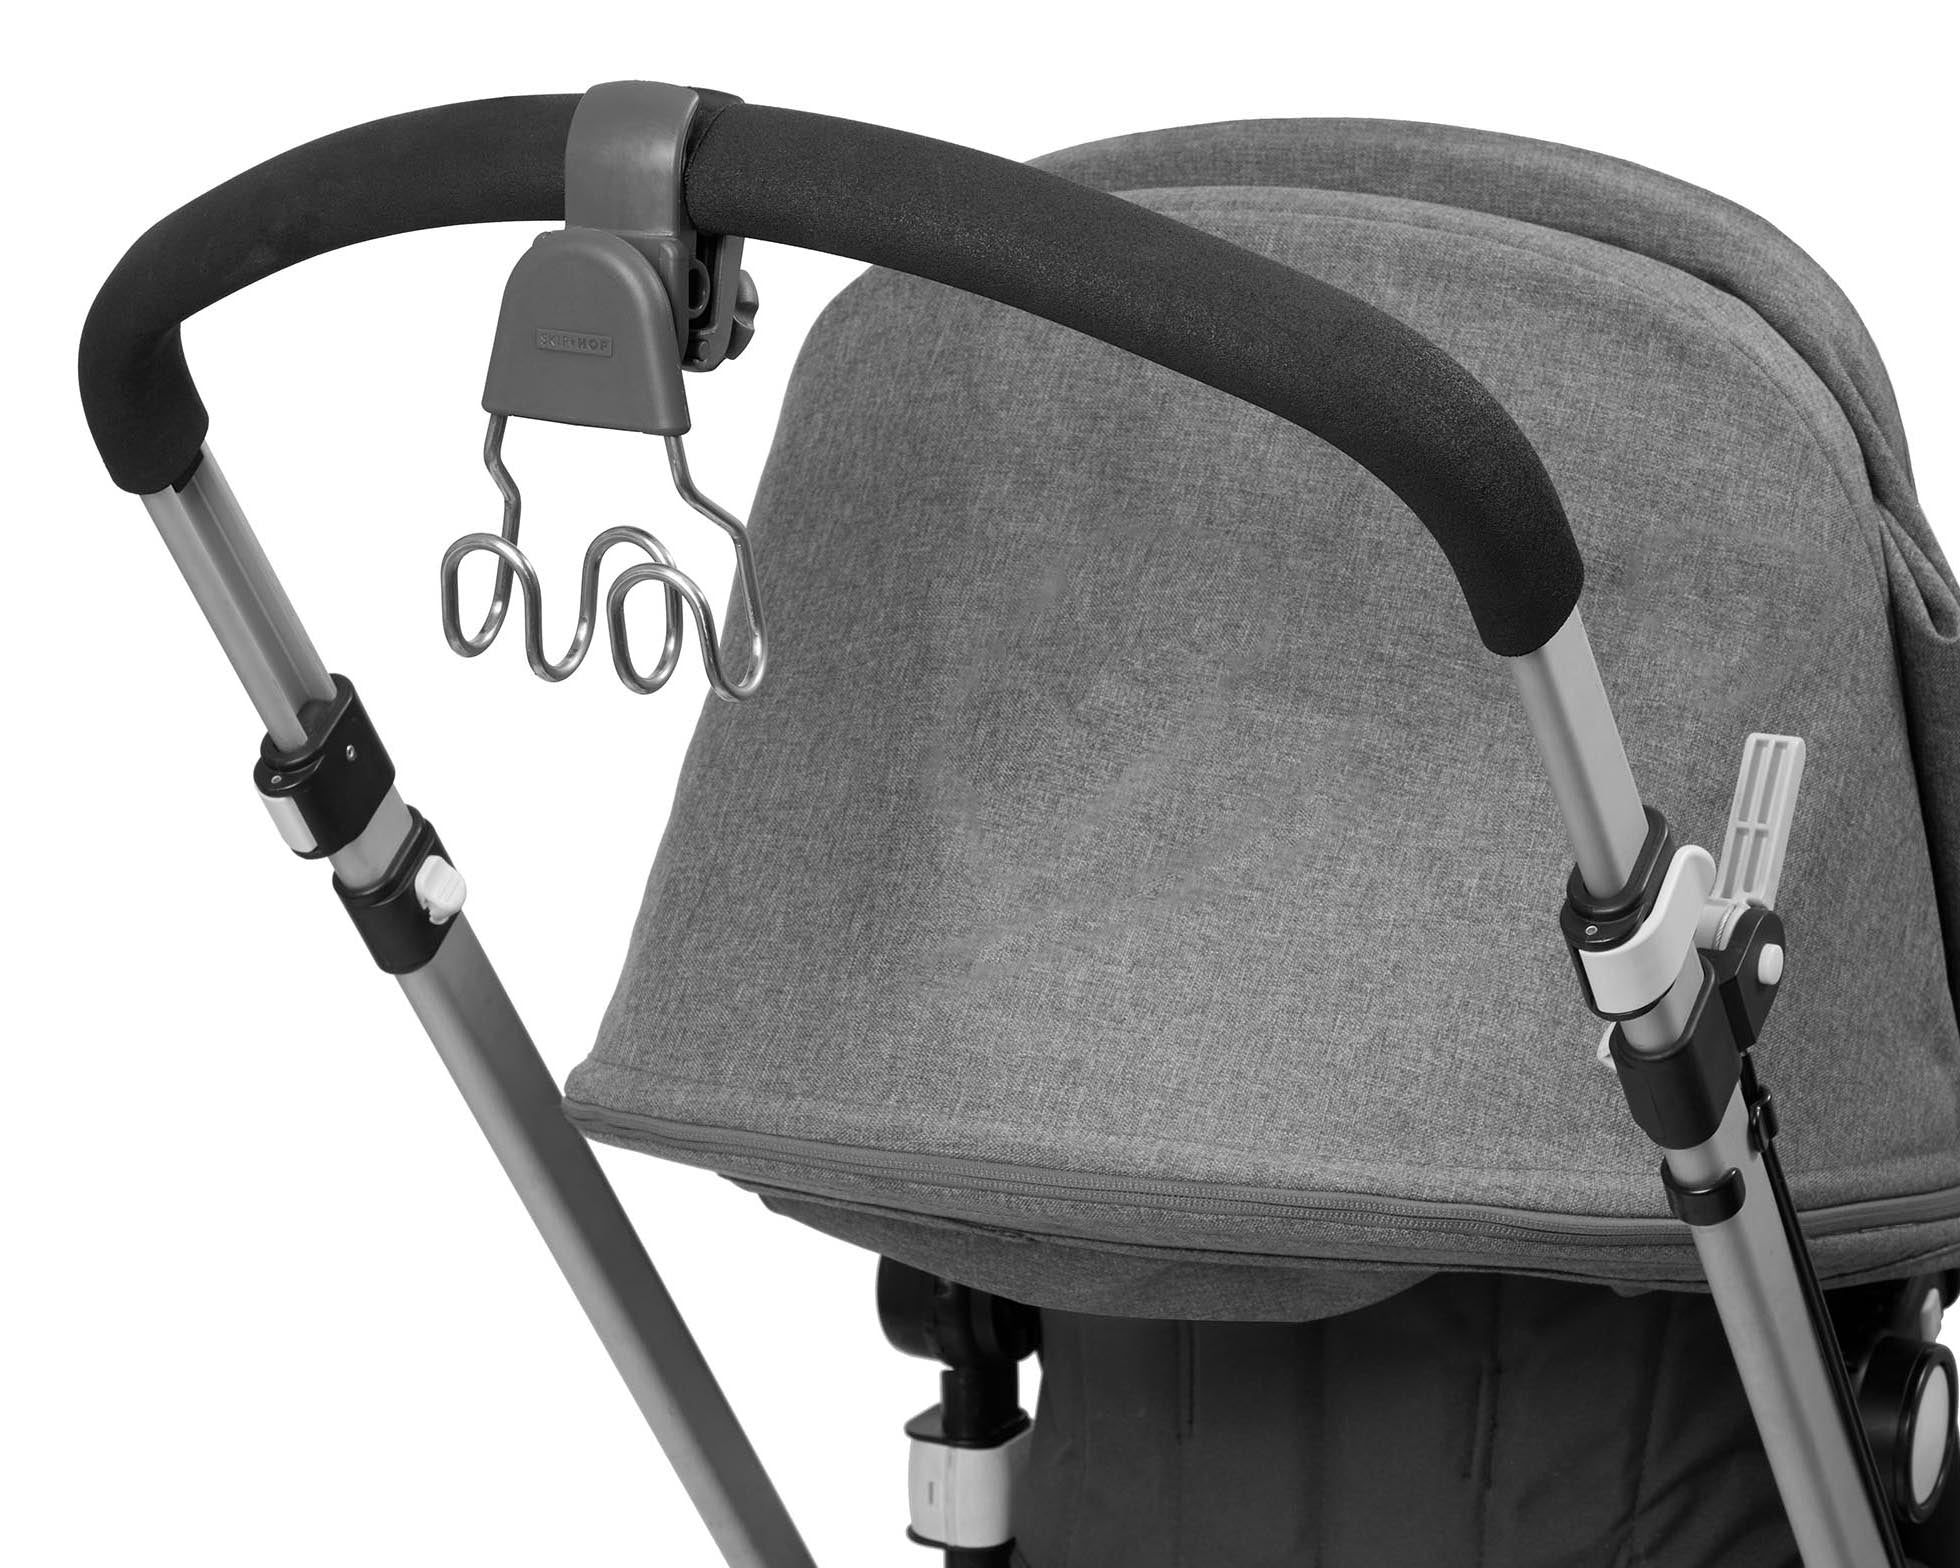 Stroll & Connect Universal Stroller Hook - The Mango Tree